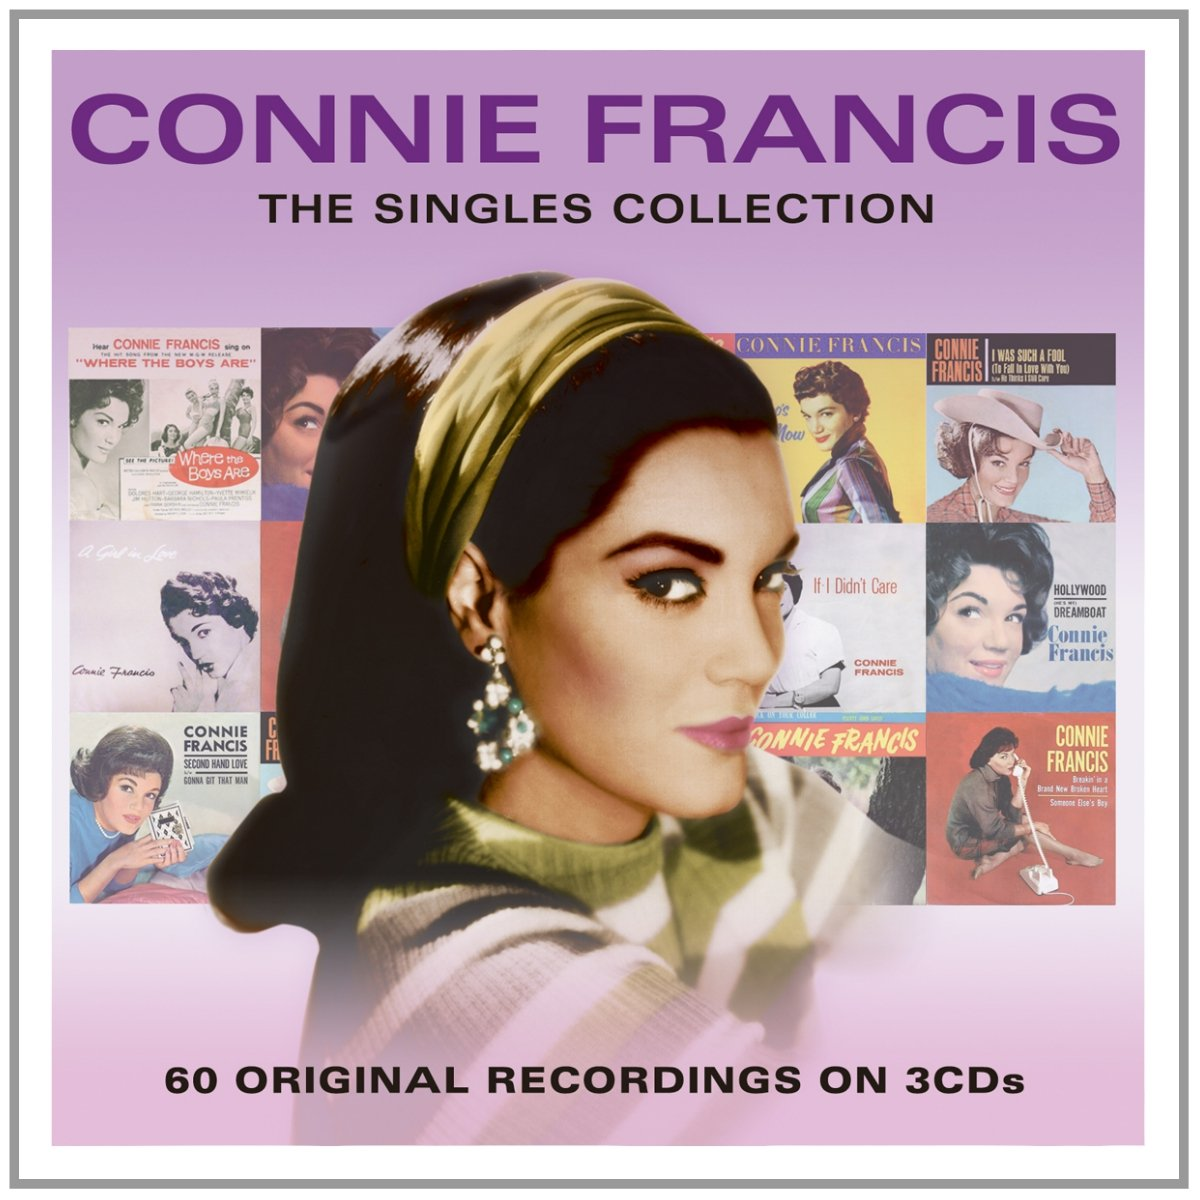 CONNIE FRANCIS The Singles Collection